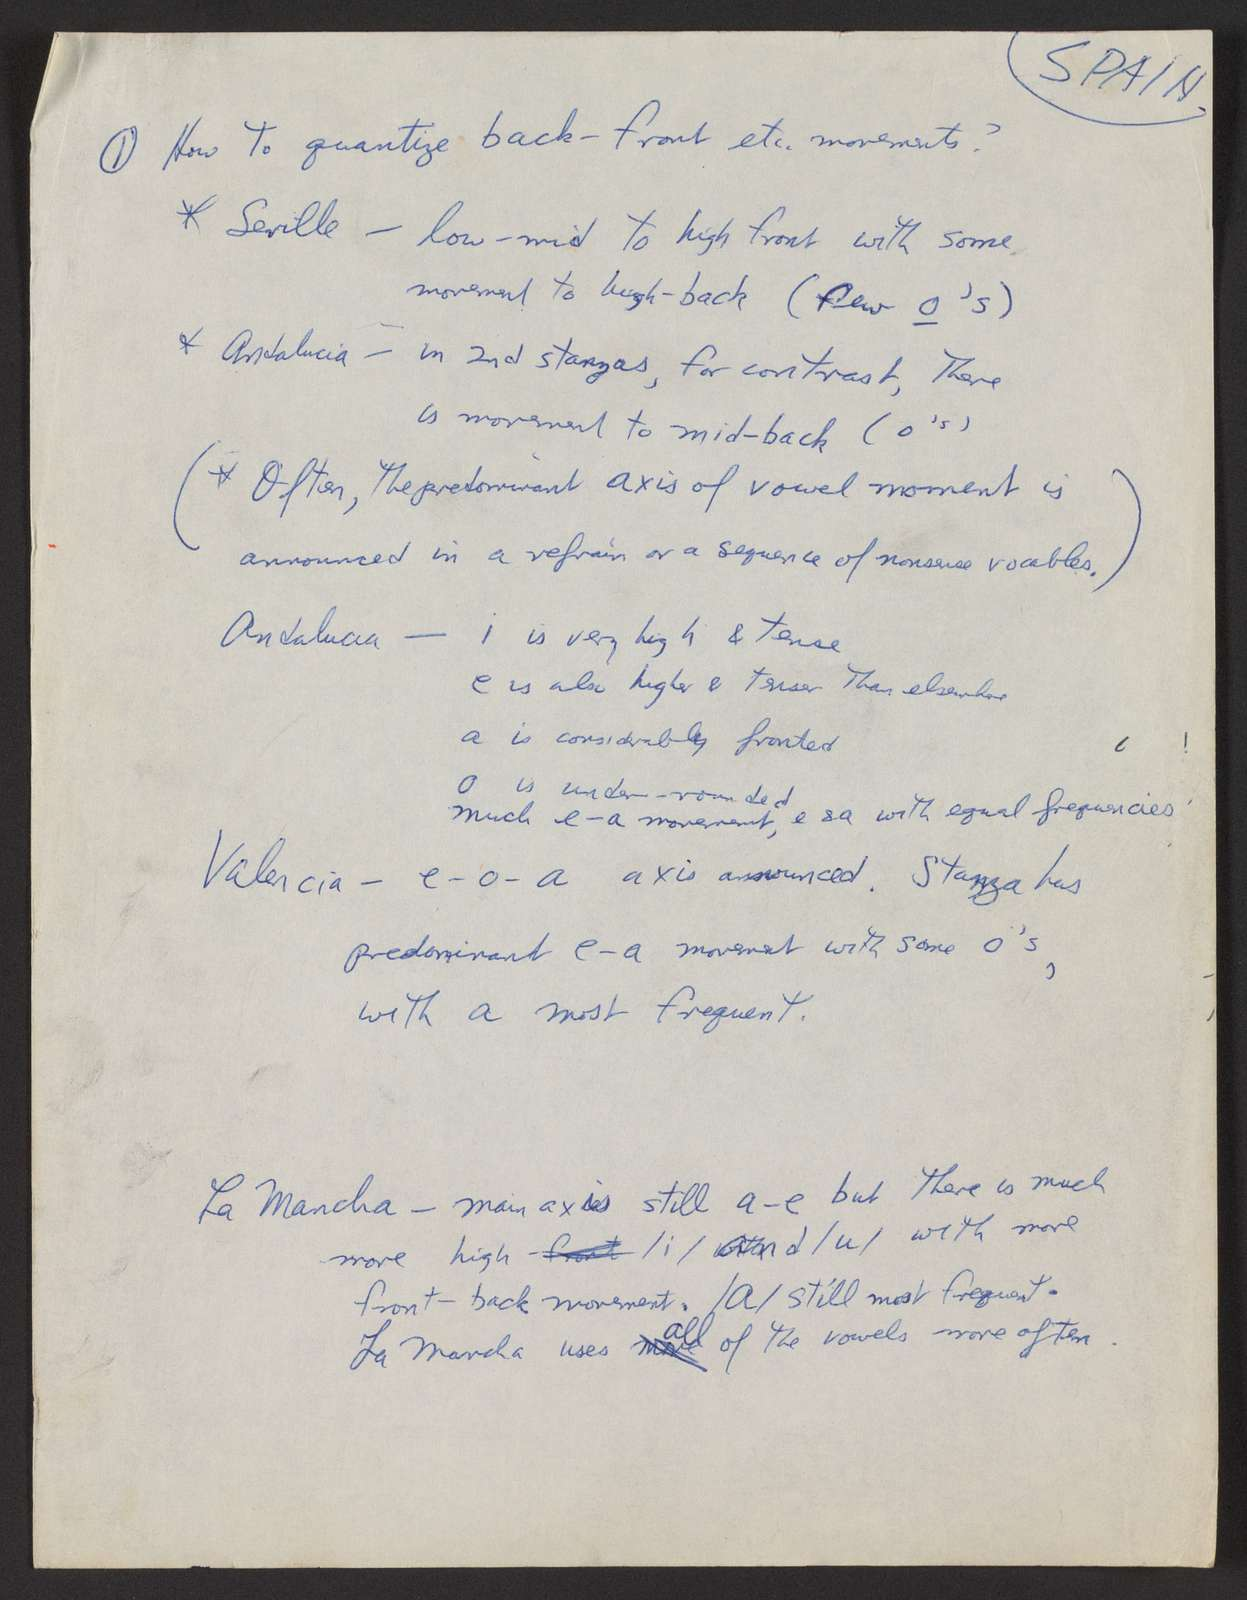 Alan Lomax Collection, Manuscripts, Performance style, writings, published, Phonotactics in Folk Song, with Edith Trager, 1964